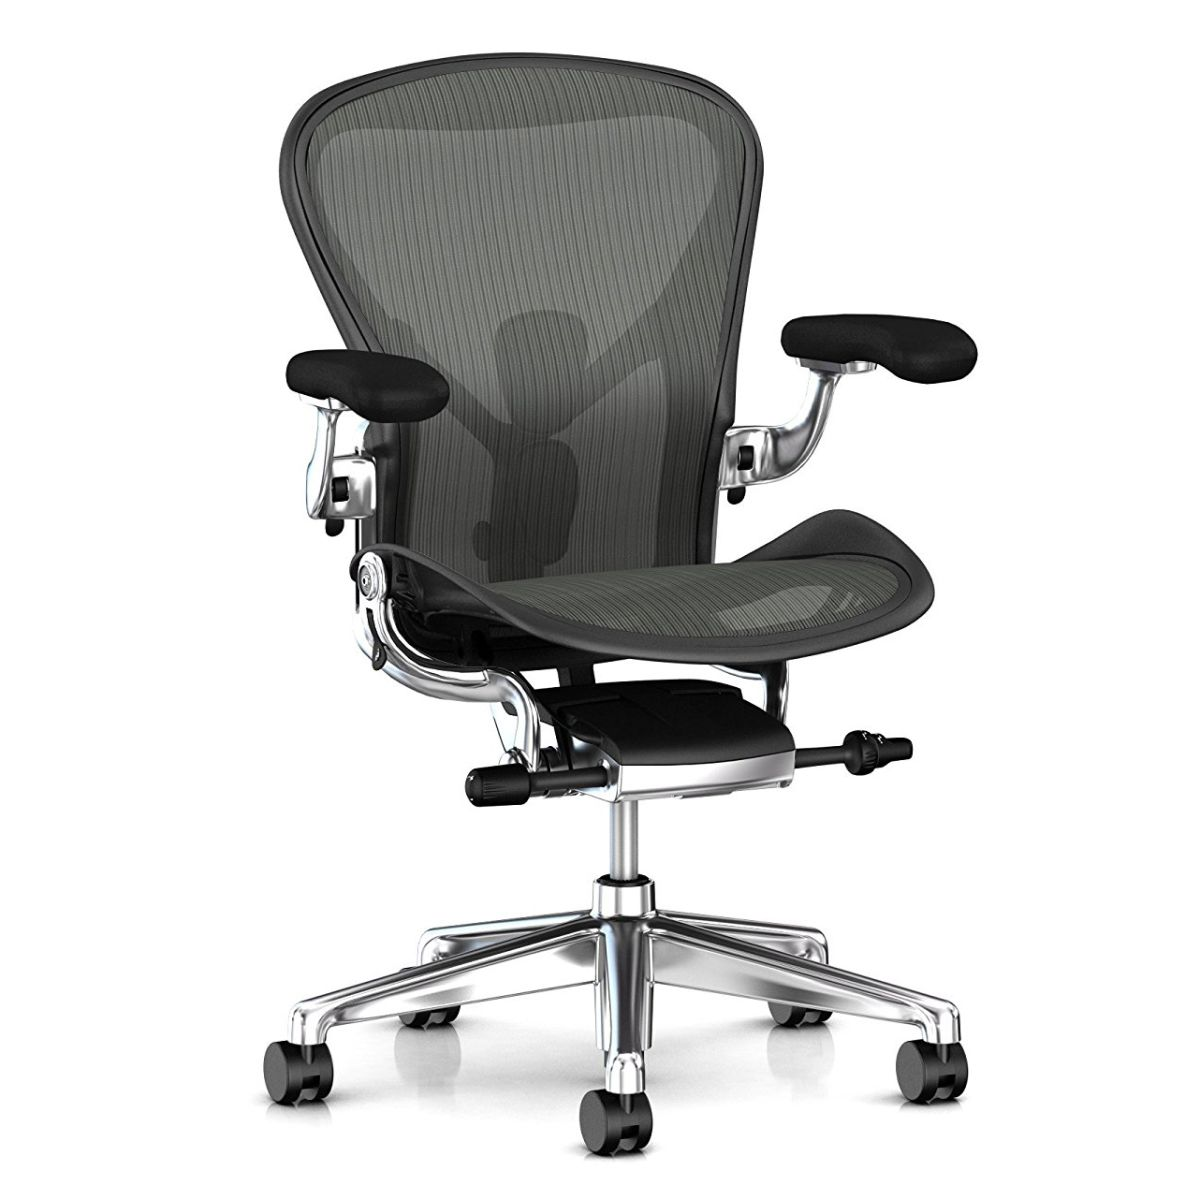 Fabulous The Best Office Chair Of 2019 Creative Bloq Home Interior And Landscaping Ymoonbapapsignezvosmurscom